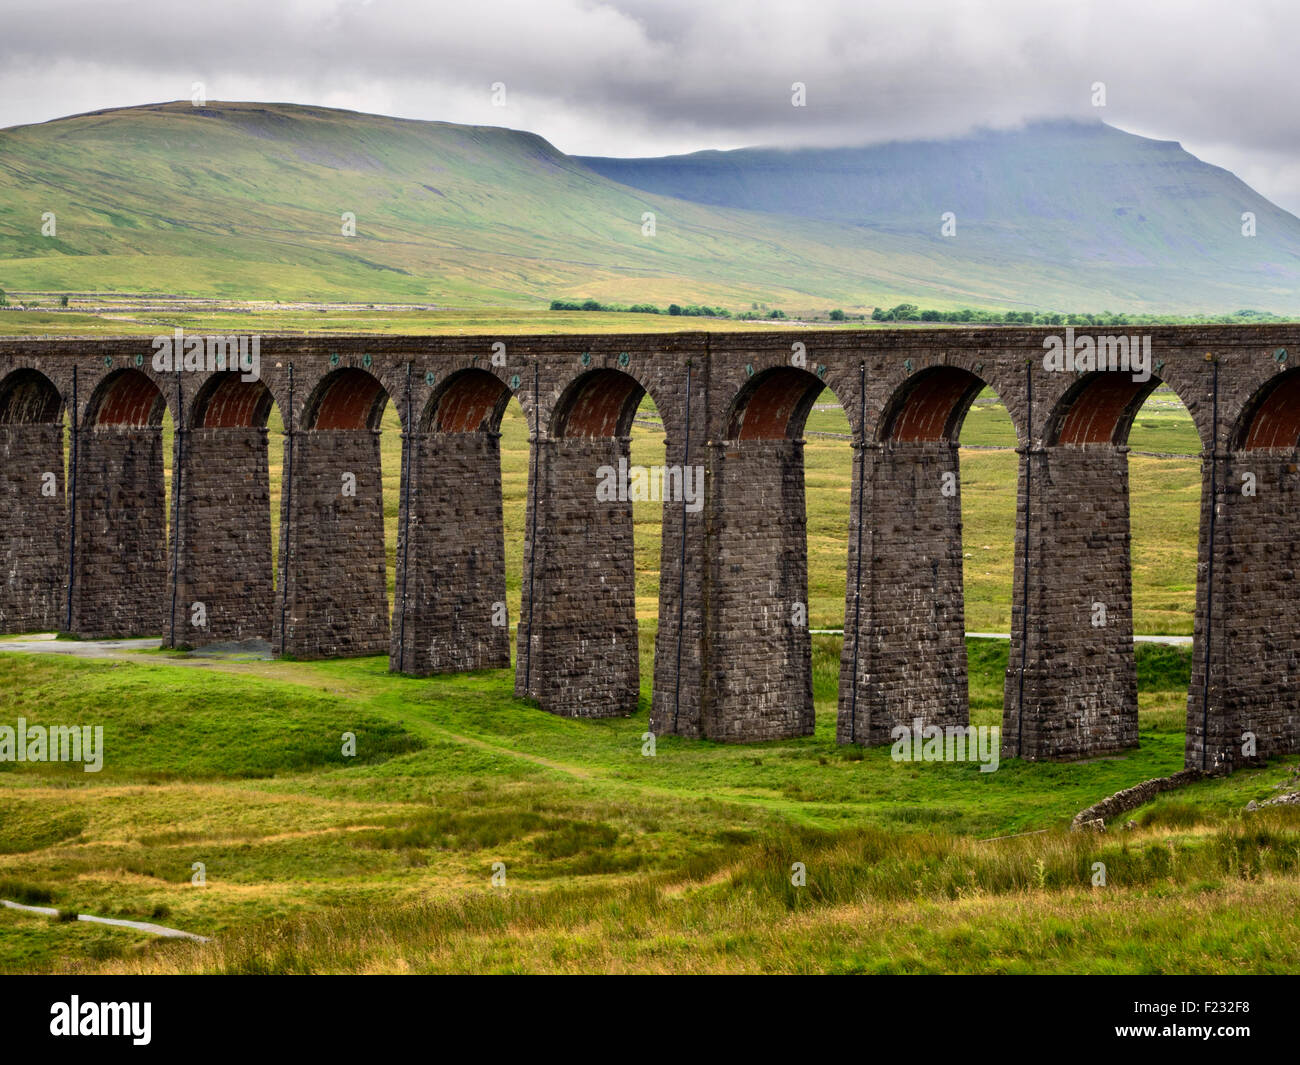 Arches of the Ribblehead Viaduct with Ingleborough Shrouded in Cloud Yorkshire Dales England - Stock Image